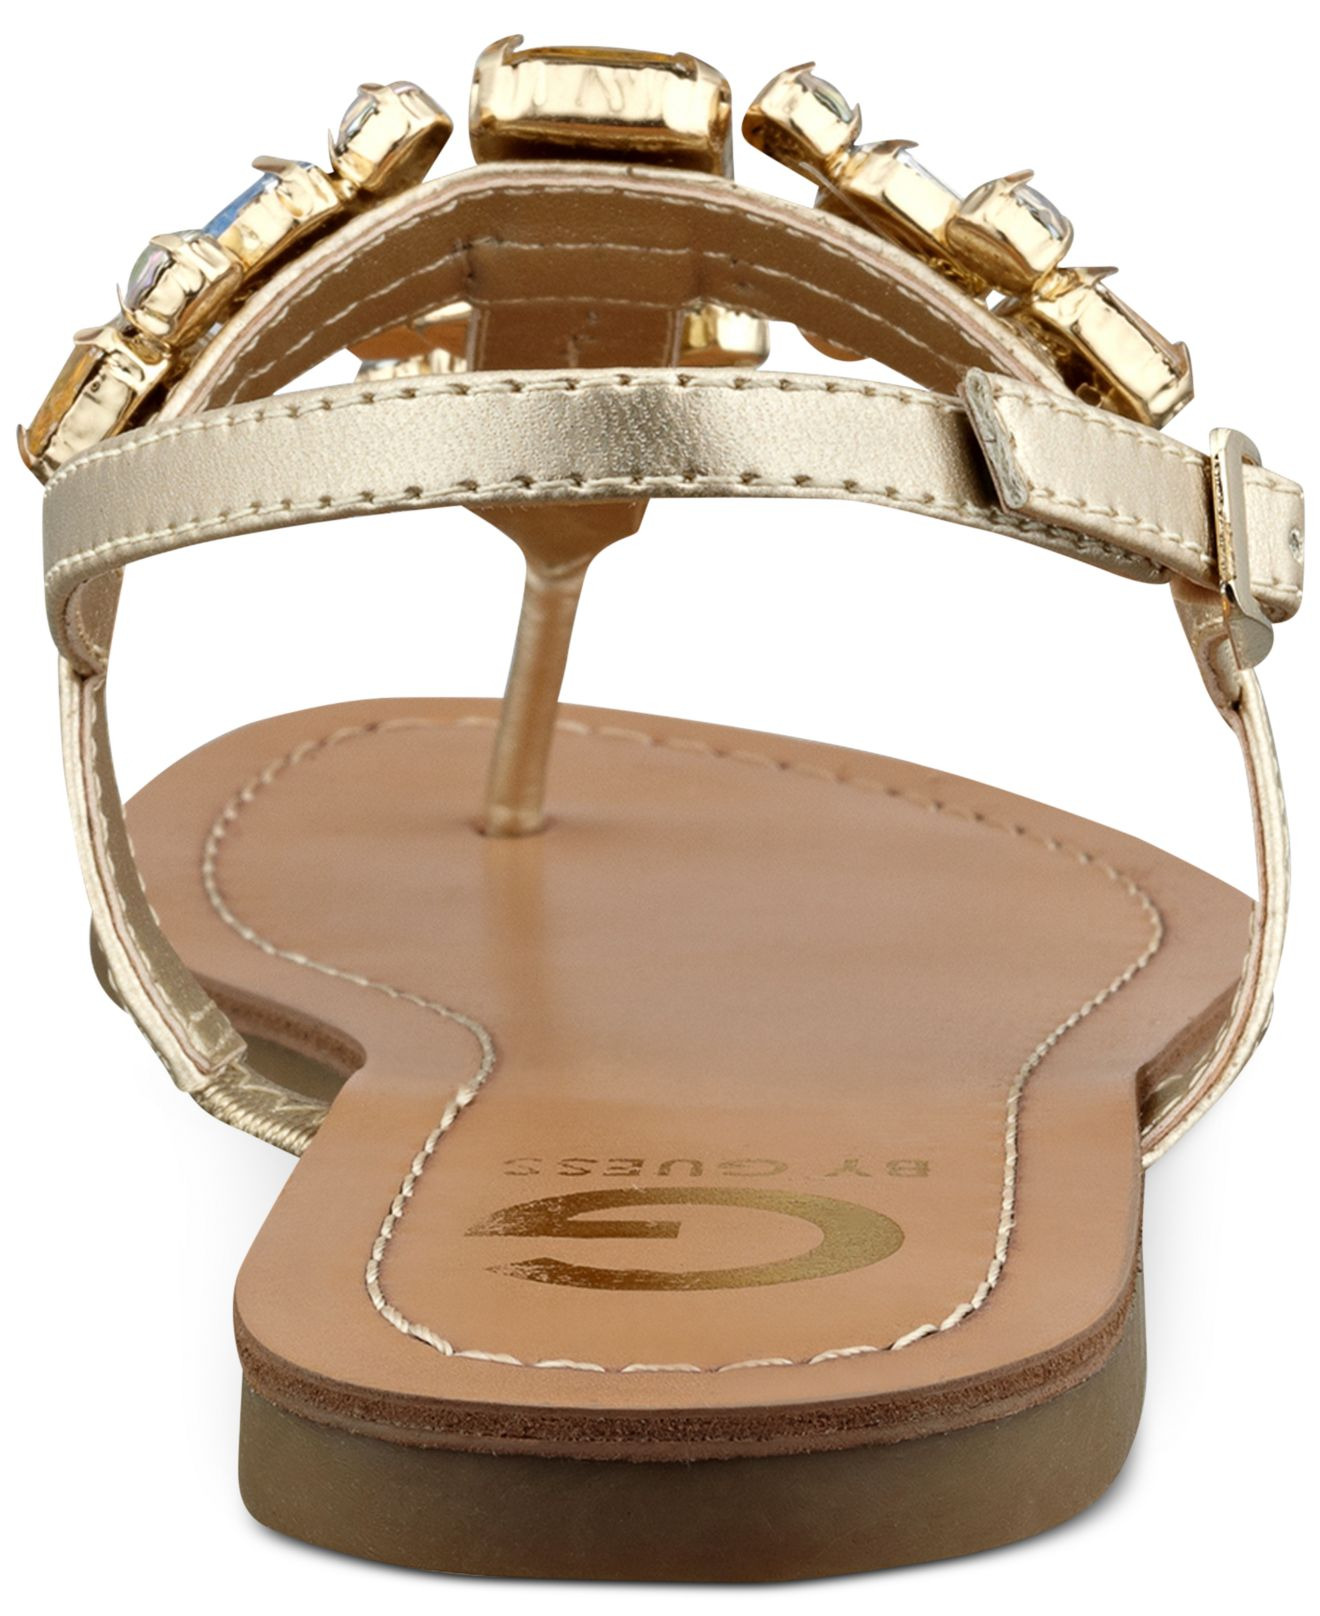 abc890ab7ac3a Lyst - G by Guess Women S Kyli T-Strap Flat Thong Sandals in Metallic